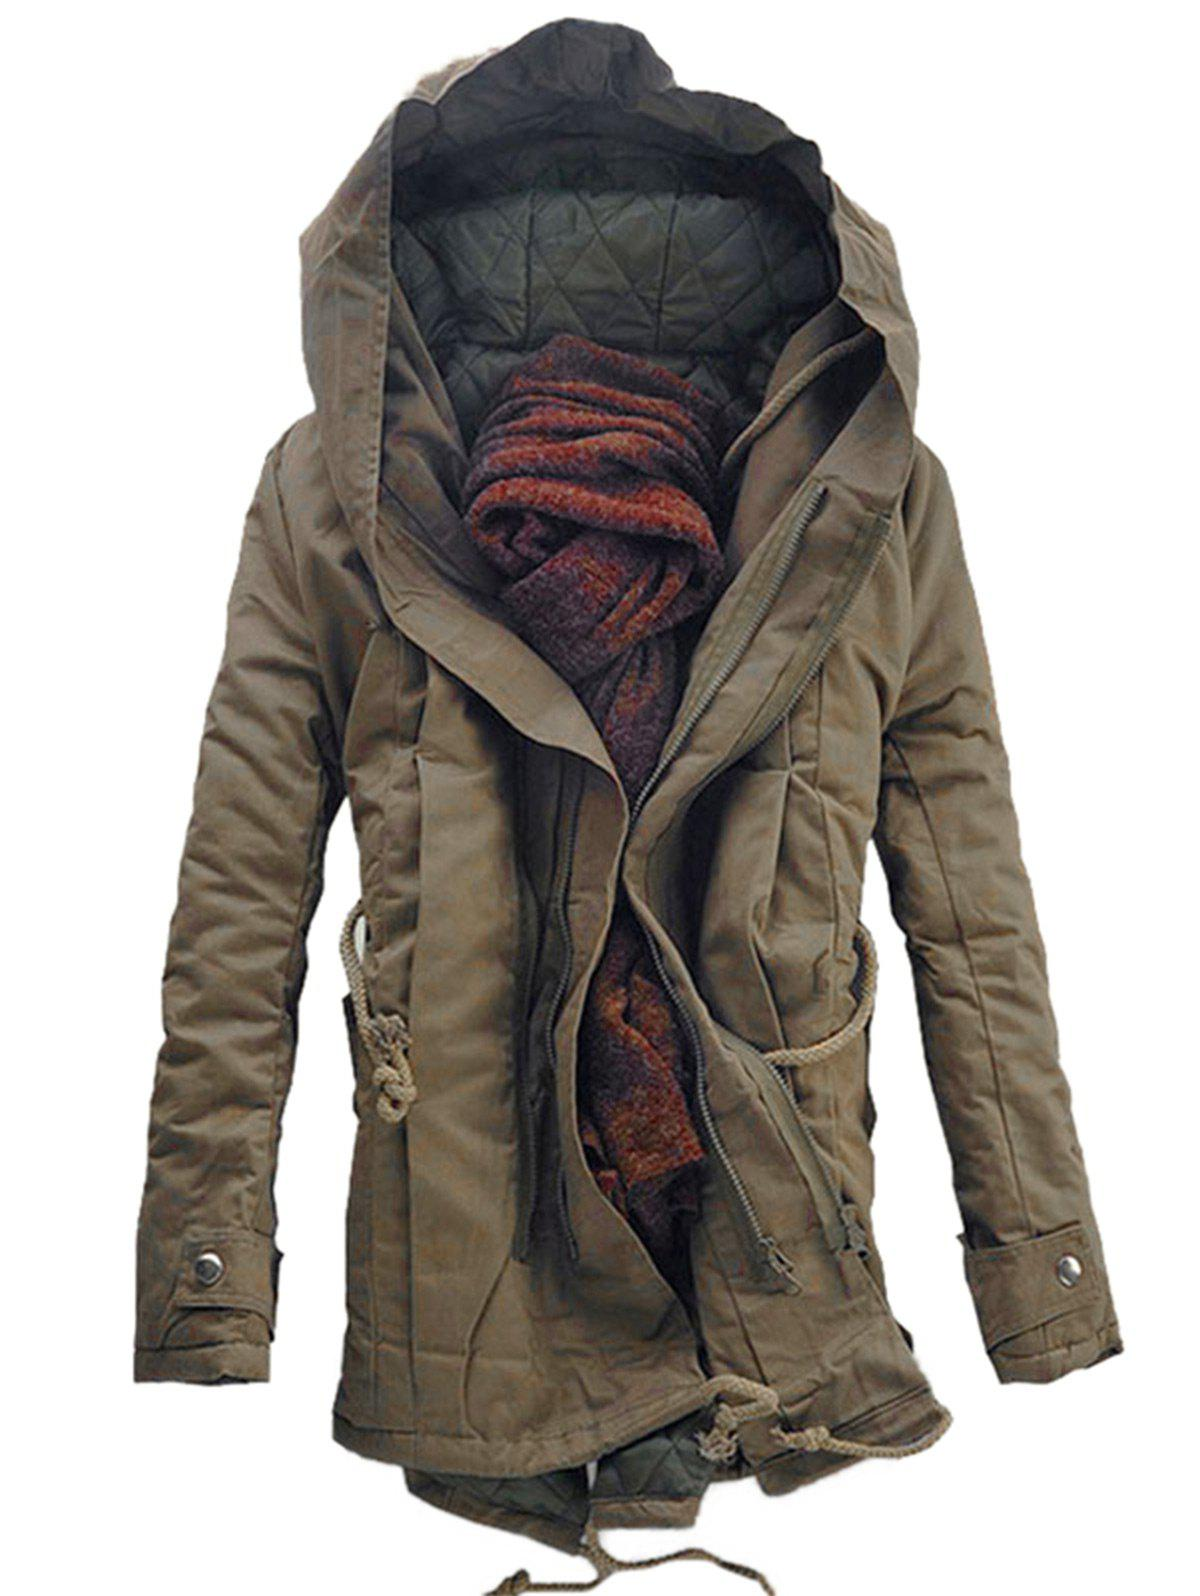 Double Zip Up Hooded Padded Parka CoatMEN<br><br>Size: XL; Color: DARK KHAKI; Clothes Type: Parkas; Style: Fashion; Material: Cotton,Spandex; Collar: Hooded; Shirt Length: Long; Sleeve Length: Long Sleeves; Season: Winter; Weight: 1.3200kg; Package Contents: 1 x Coat;